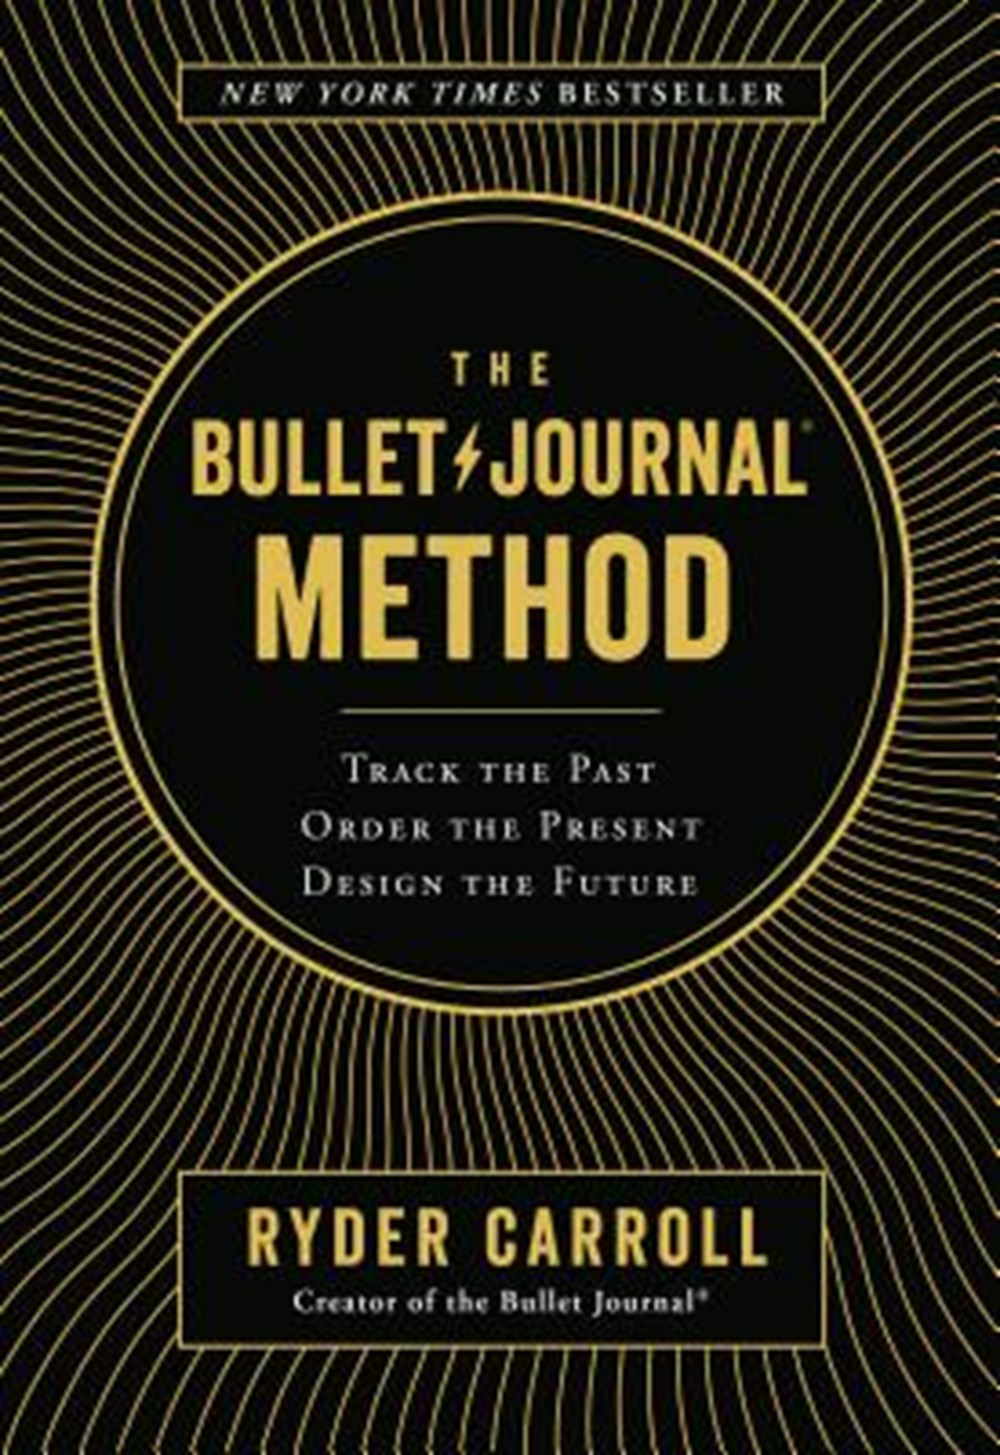 Bullet Journal Method Track the Past, Order the Present, Design the Future